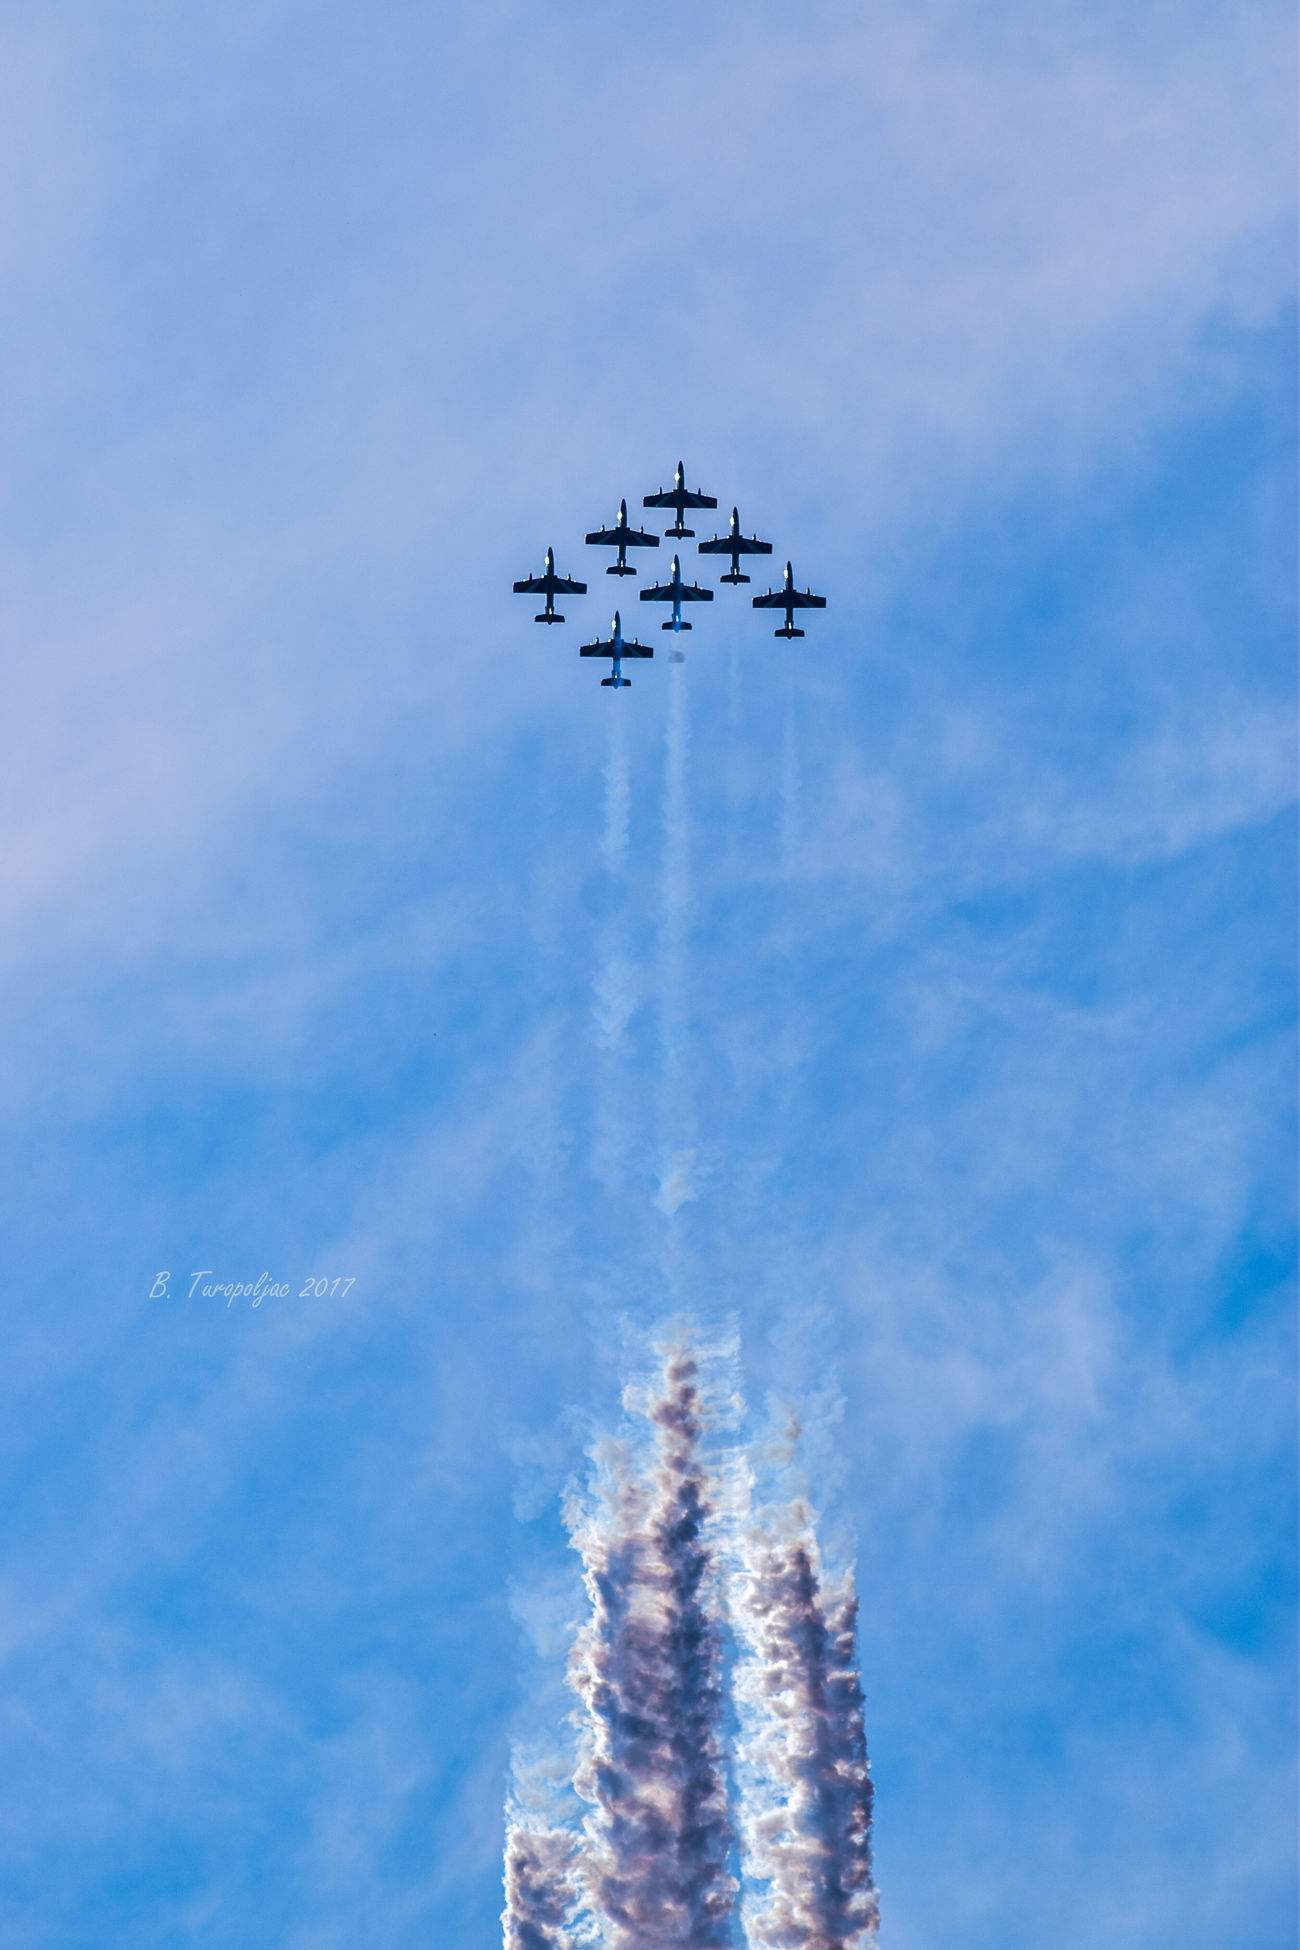 Aerobatics Aerospace Industry Air Force Air Vehicle Airplane Airshow Arrangement Cloud - Sky Day Fighter Plane Flying Mid-air Military Airplane Mode Of Transport Motion No People Outdoors Sky Speed Teamwork Transportation